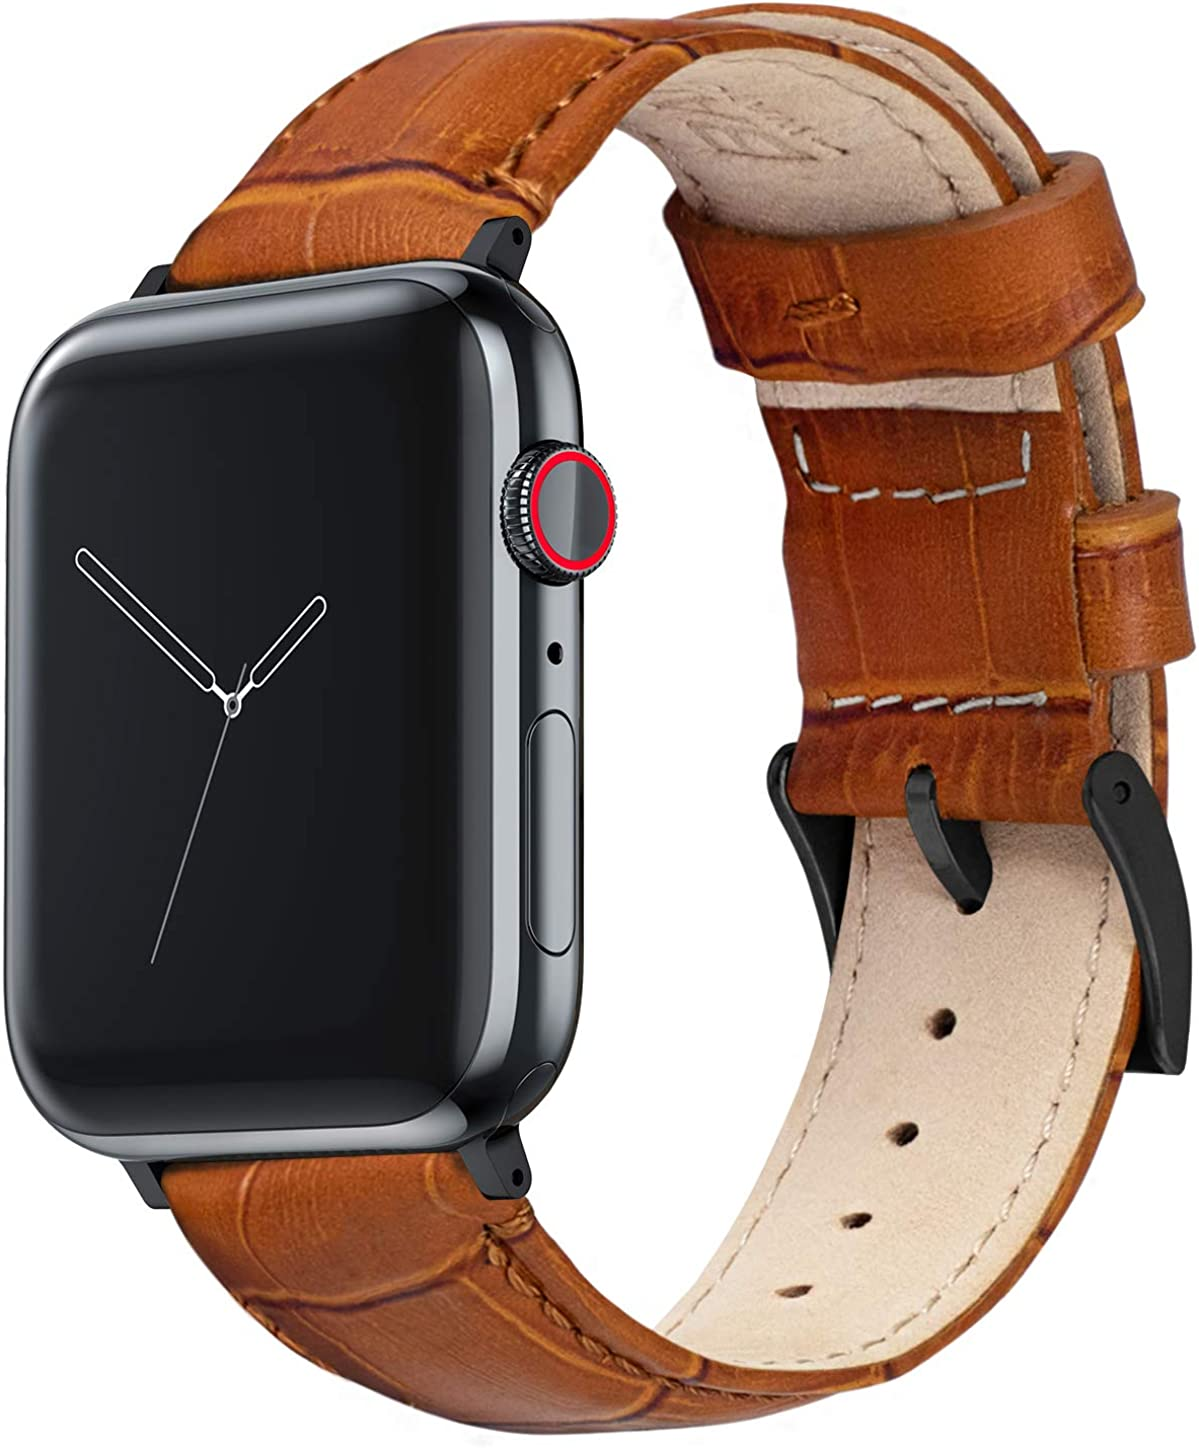 BARTON Watch Bands - Alligator Grain - Quick Release Leather Watch Bands - Choose Color & Size - Compatible with All Apple Watches - 38mm, 40mm, 42mm, 44mm